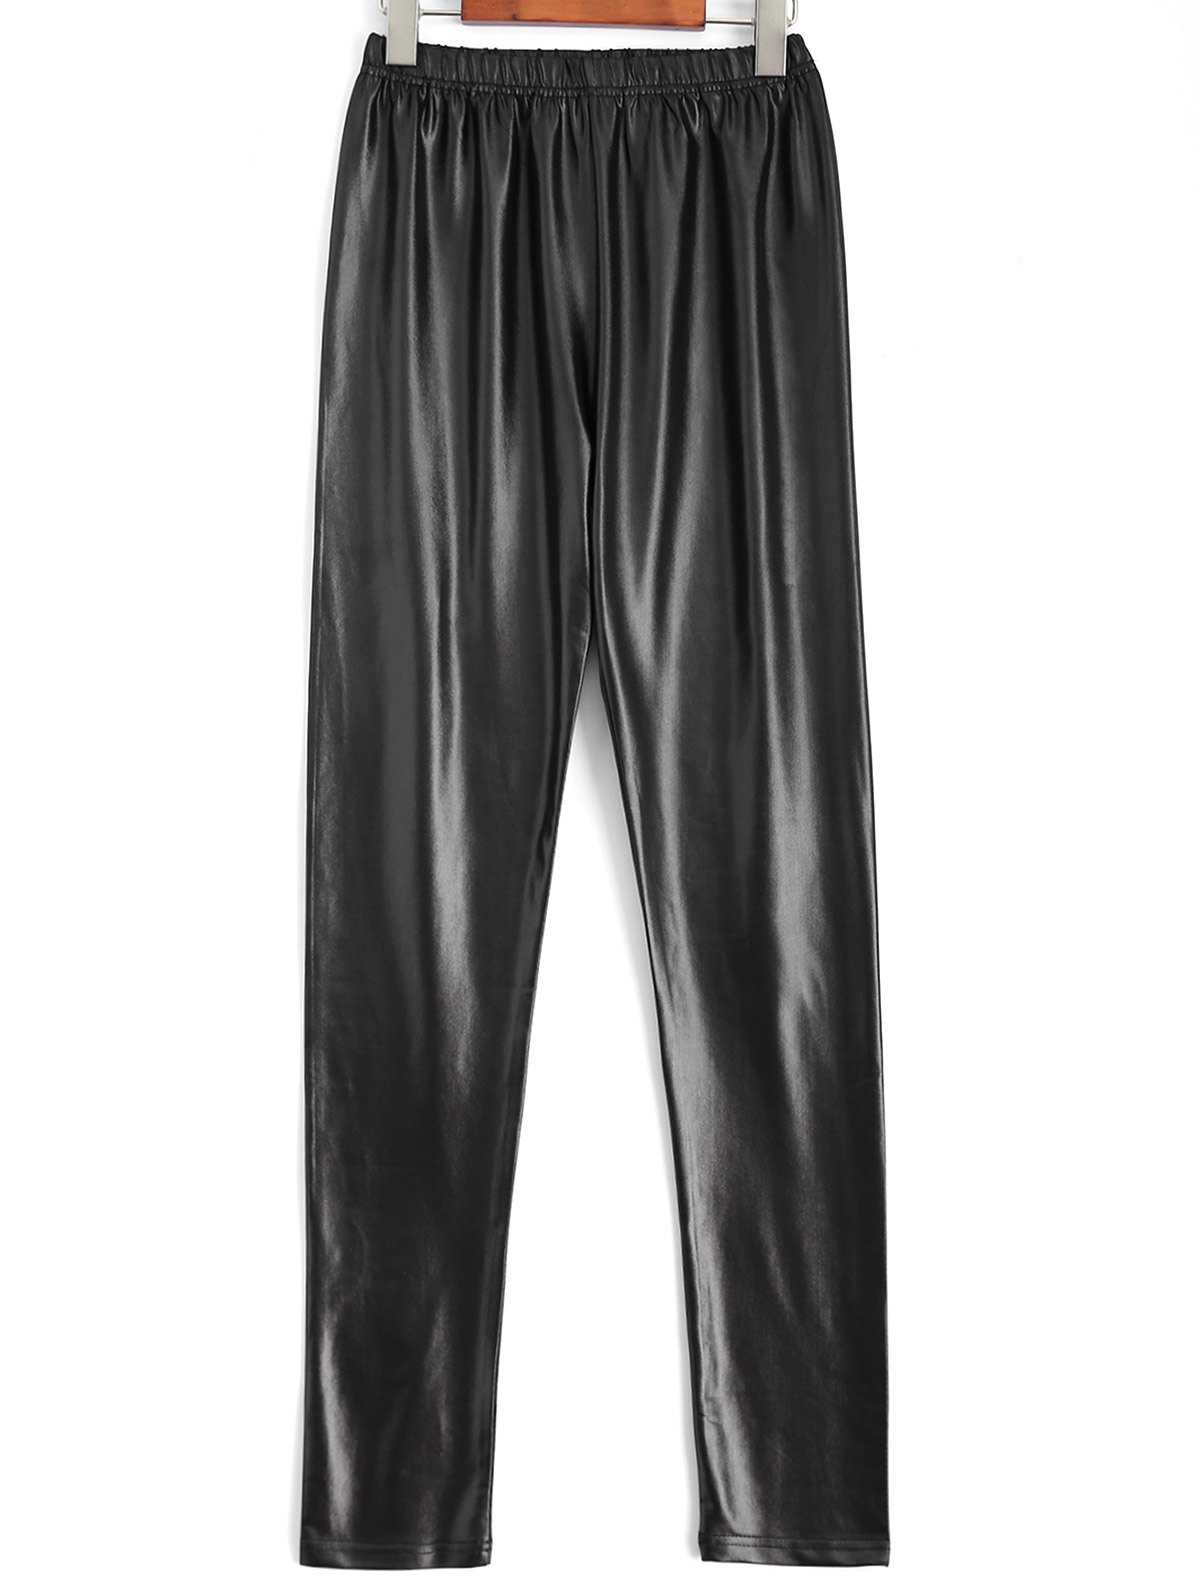 Plus Size Faux Leather Pencil PantsWOMEN<br><br>Size: 4XL; Color: BLACK; Style: Fashion; Length: Normal; Material: Faux Leather; Fit Type: Skinny; Waist Type: High; Closure Type: Elastic Waist; Pattern Type: Solid; Pant Style: Pencil Pants; Weight: 0.266kg; Package Contents: 1 x Pants;